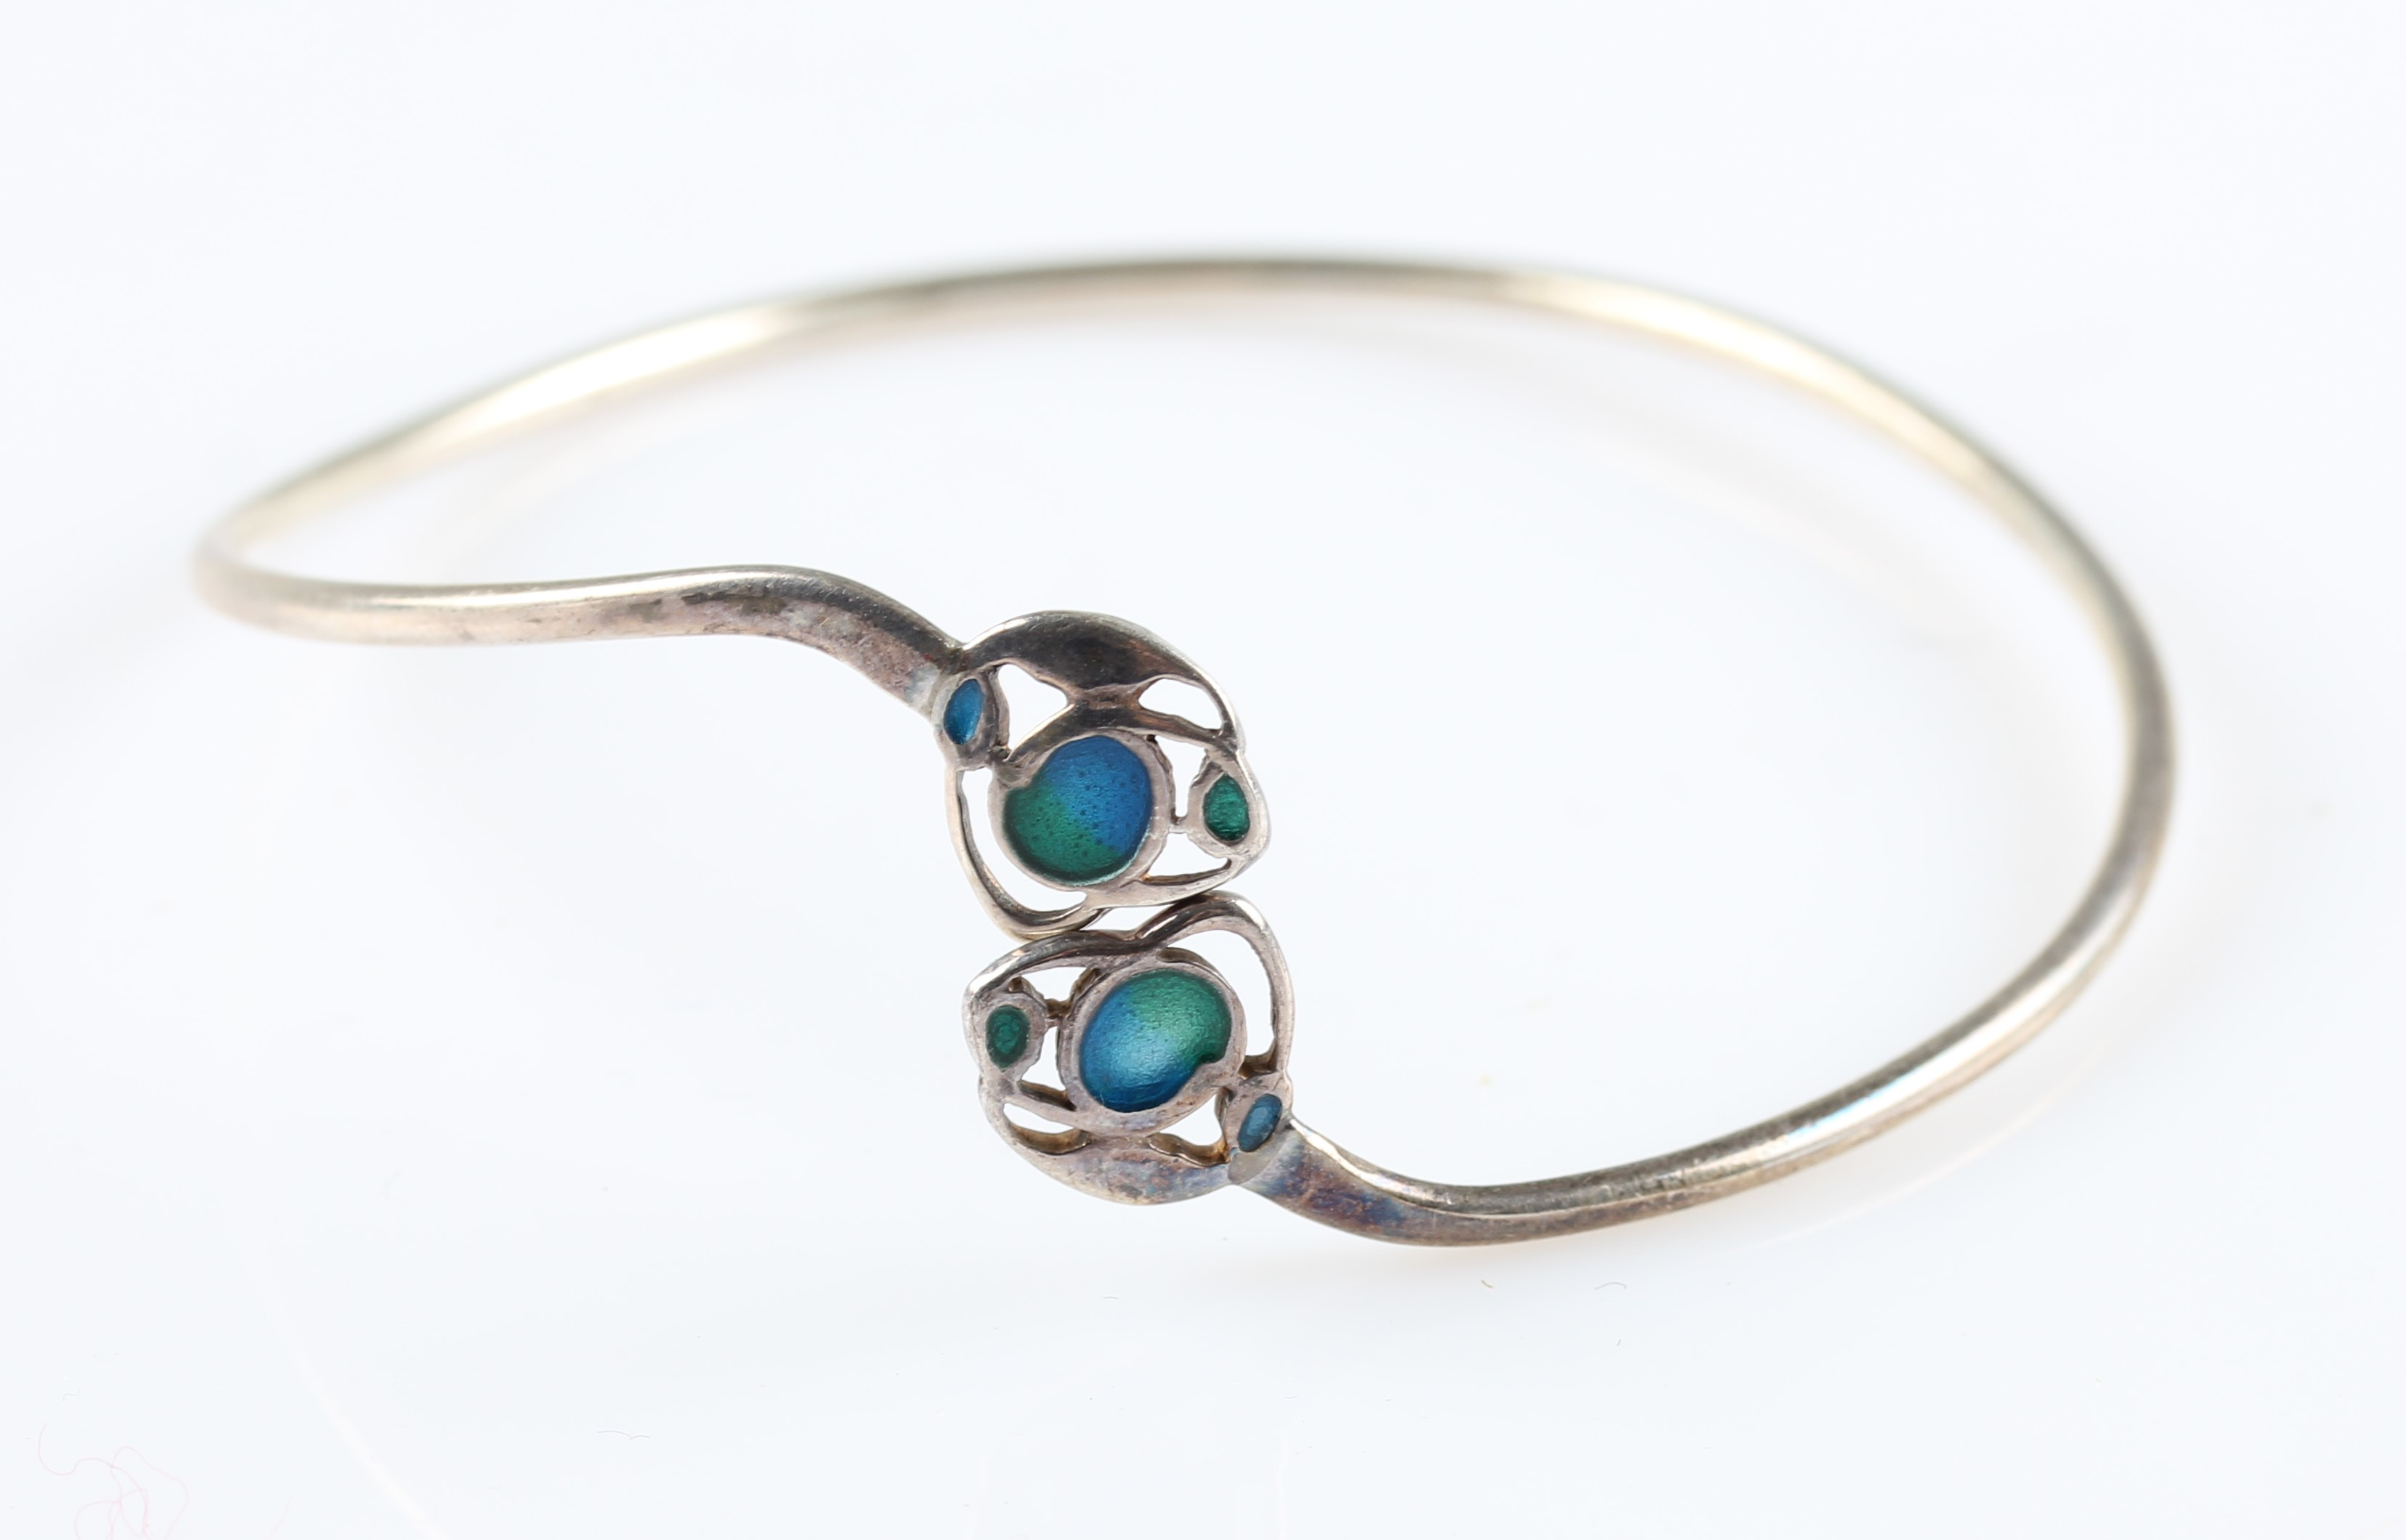 Lot 5 - A Liberty & Co. silver and enamel bangle, the Arts & Crafts style cross over design featuring two